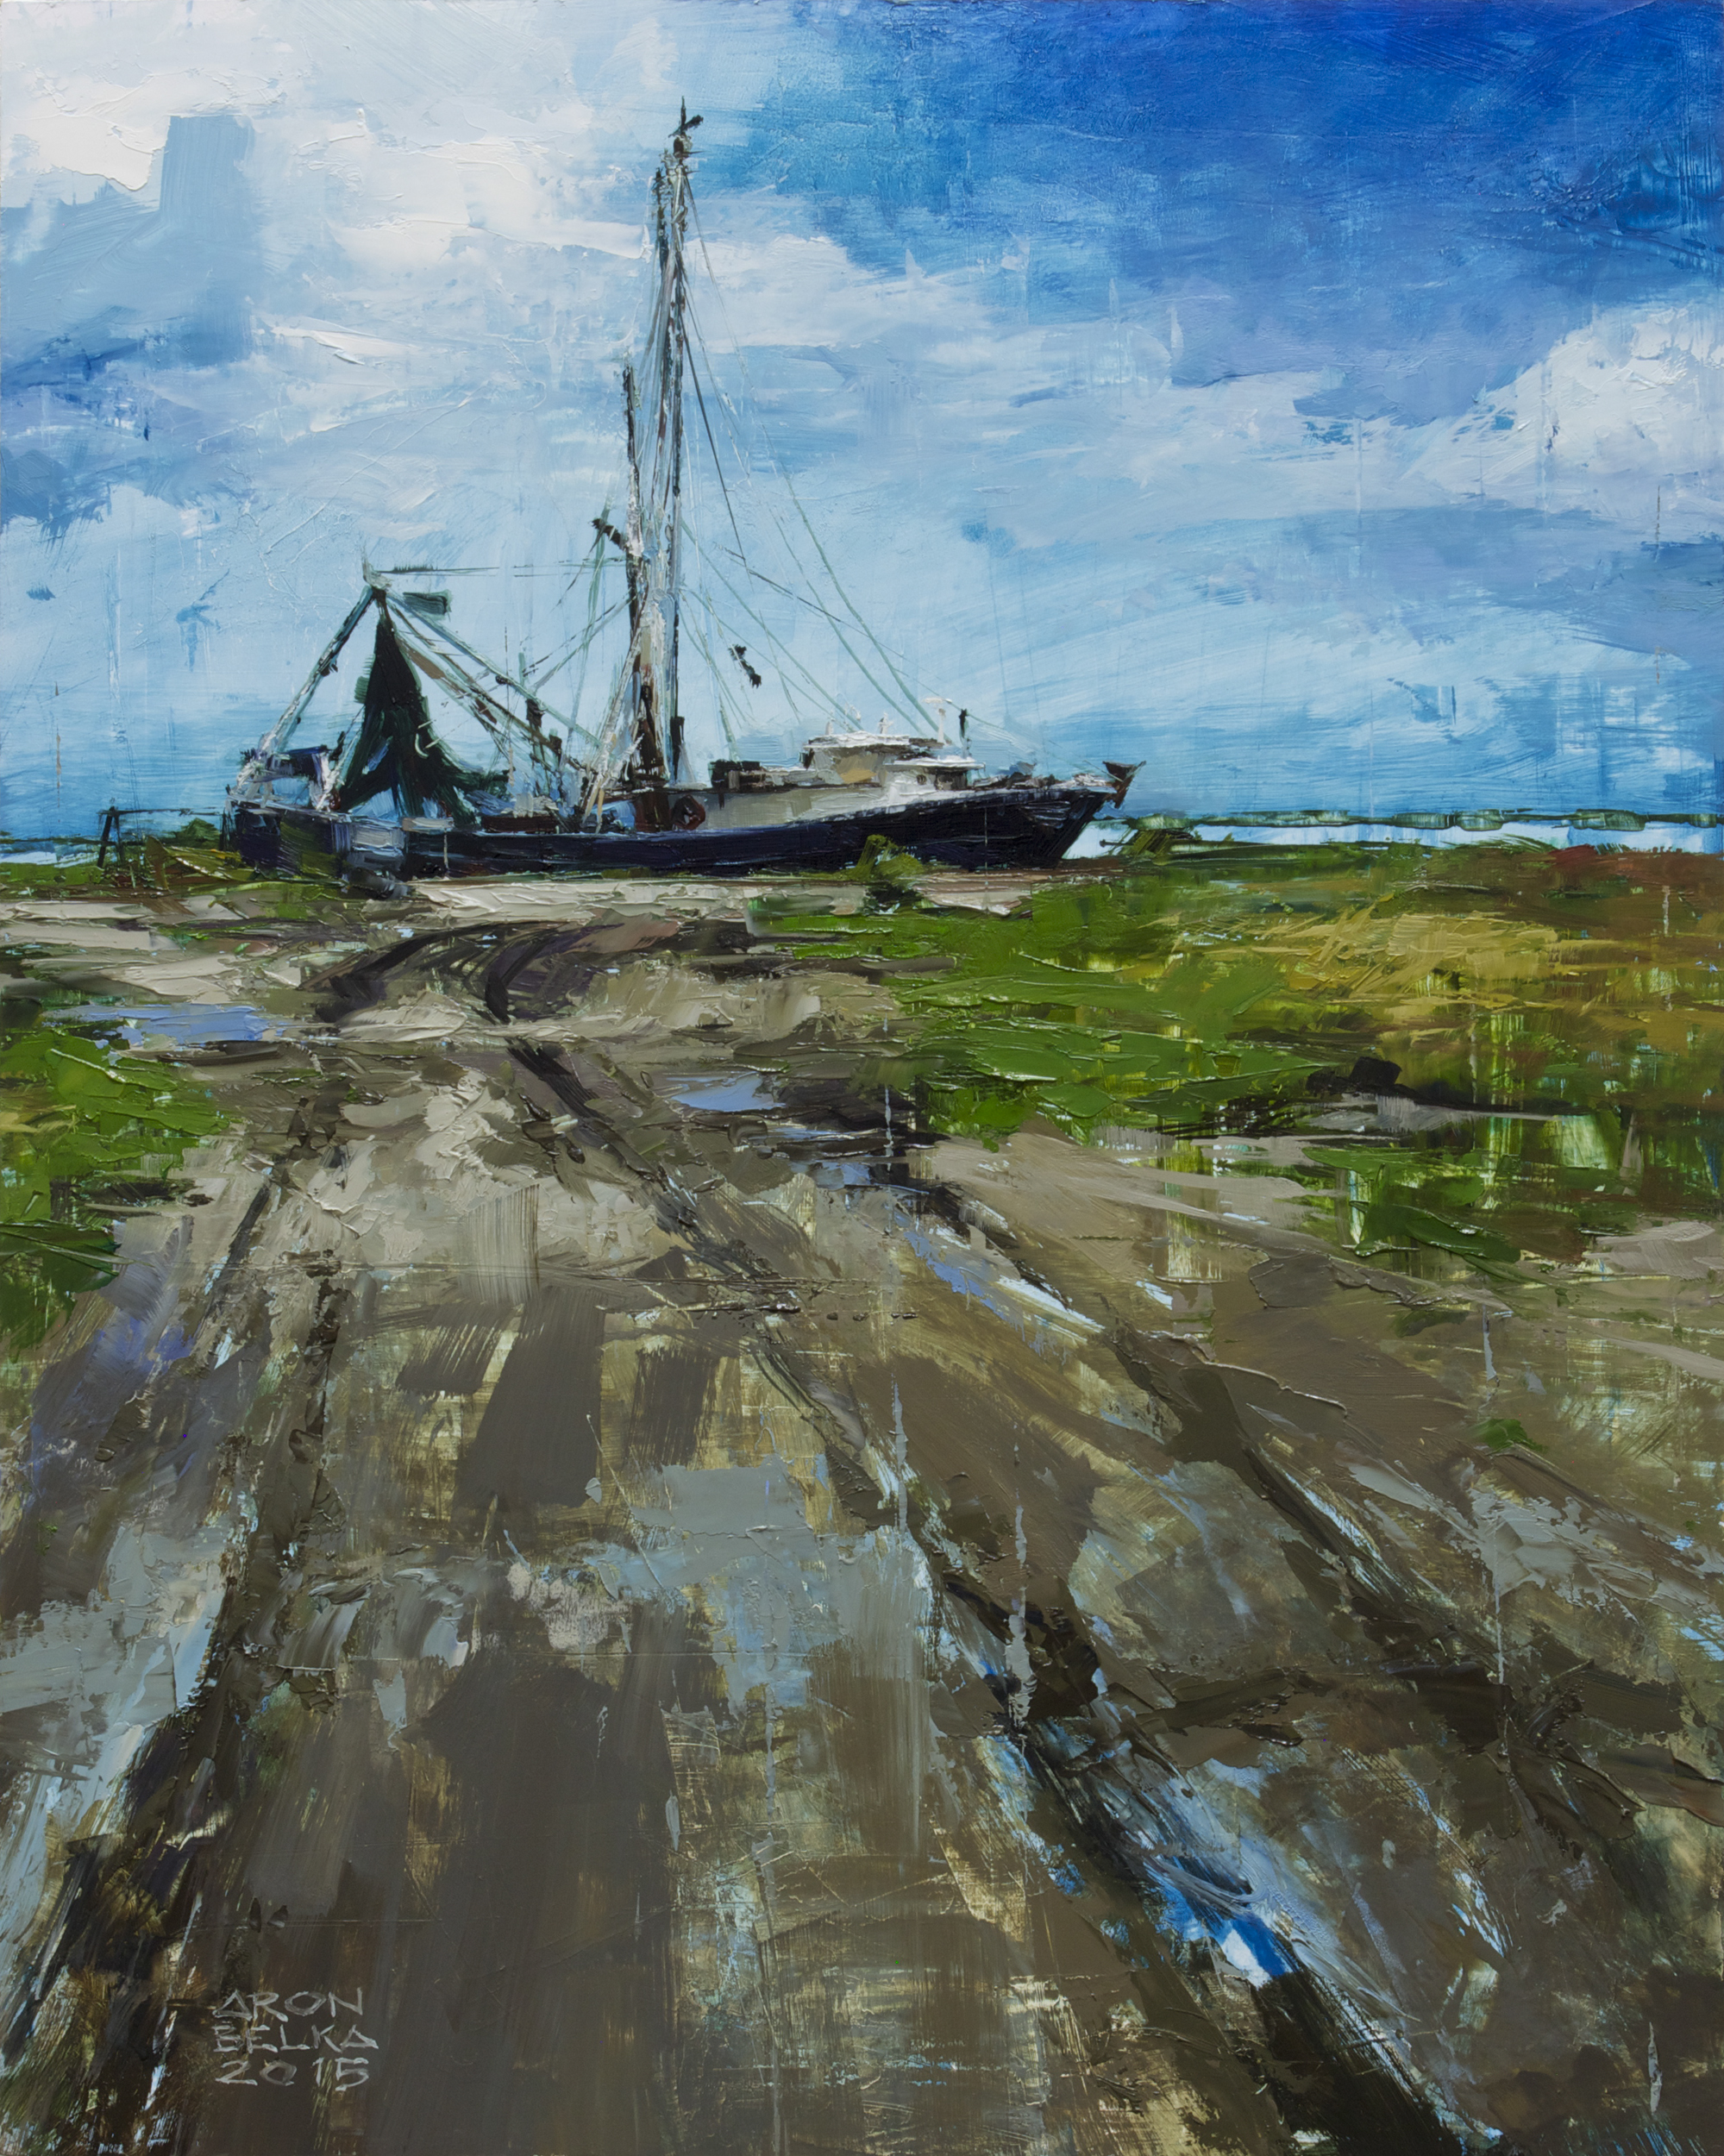 Grand Isle Shrimper    2015 20 x 16 inches   oil on wood